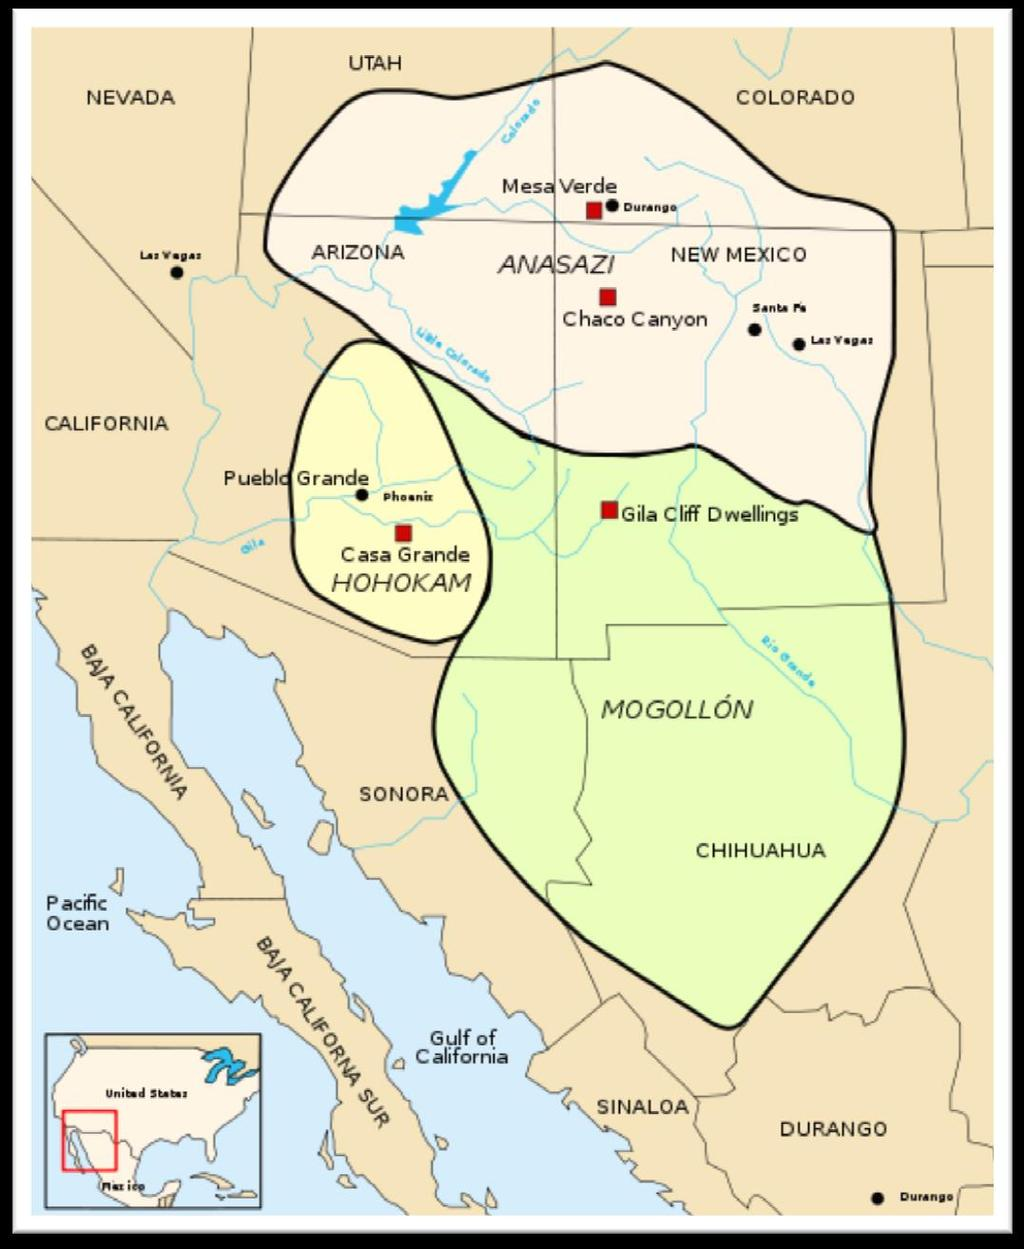 Three groups dominate the oldest period of North American prehistory: The